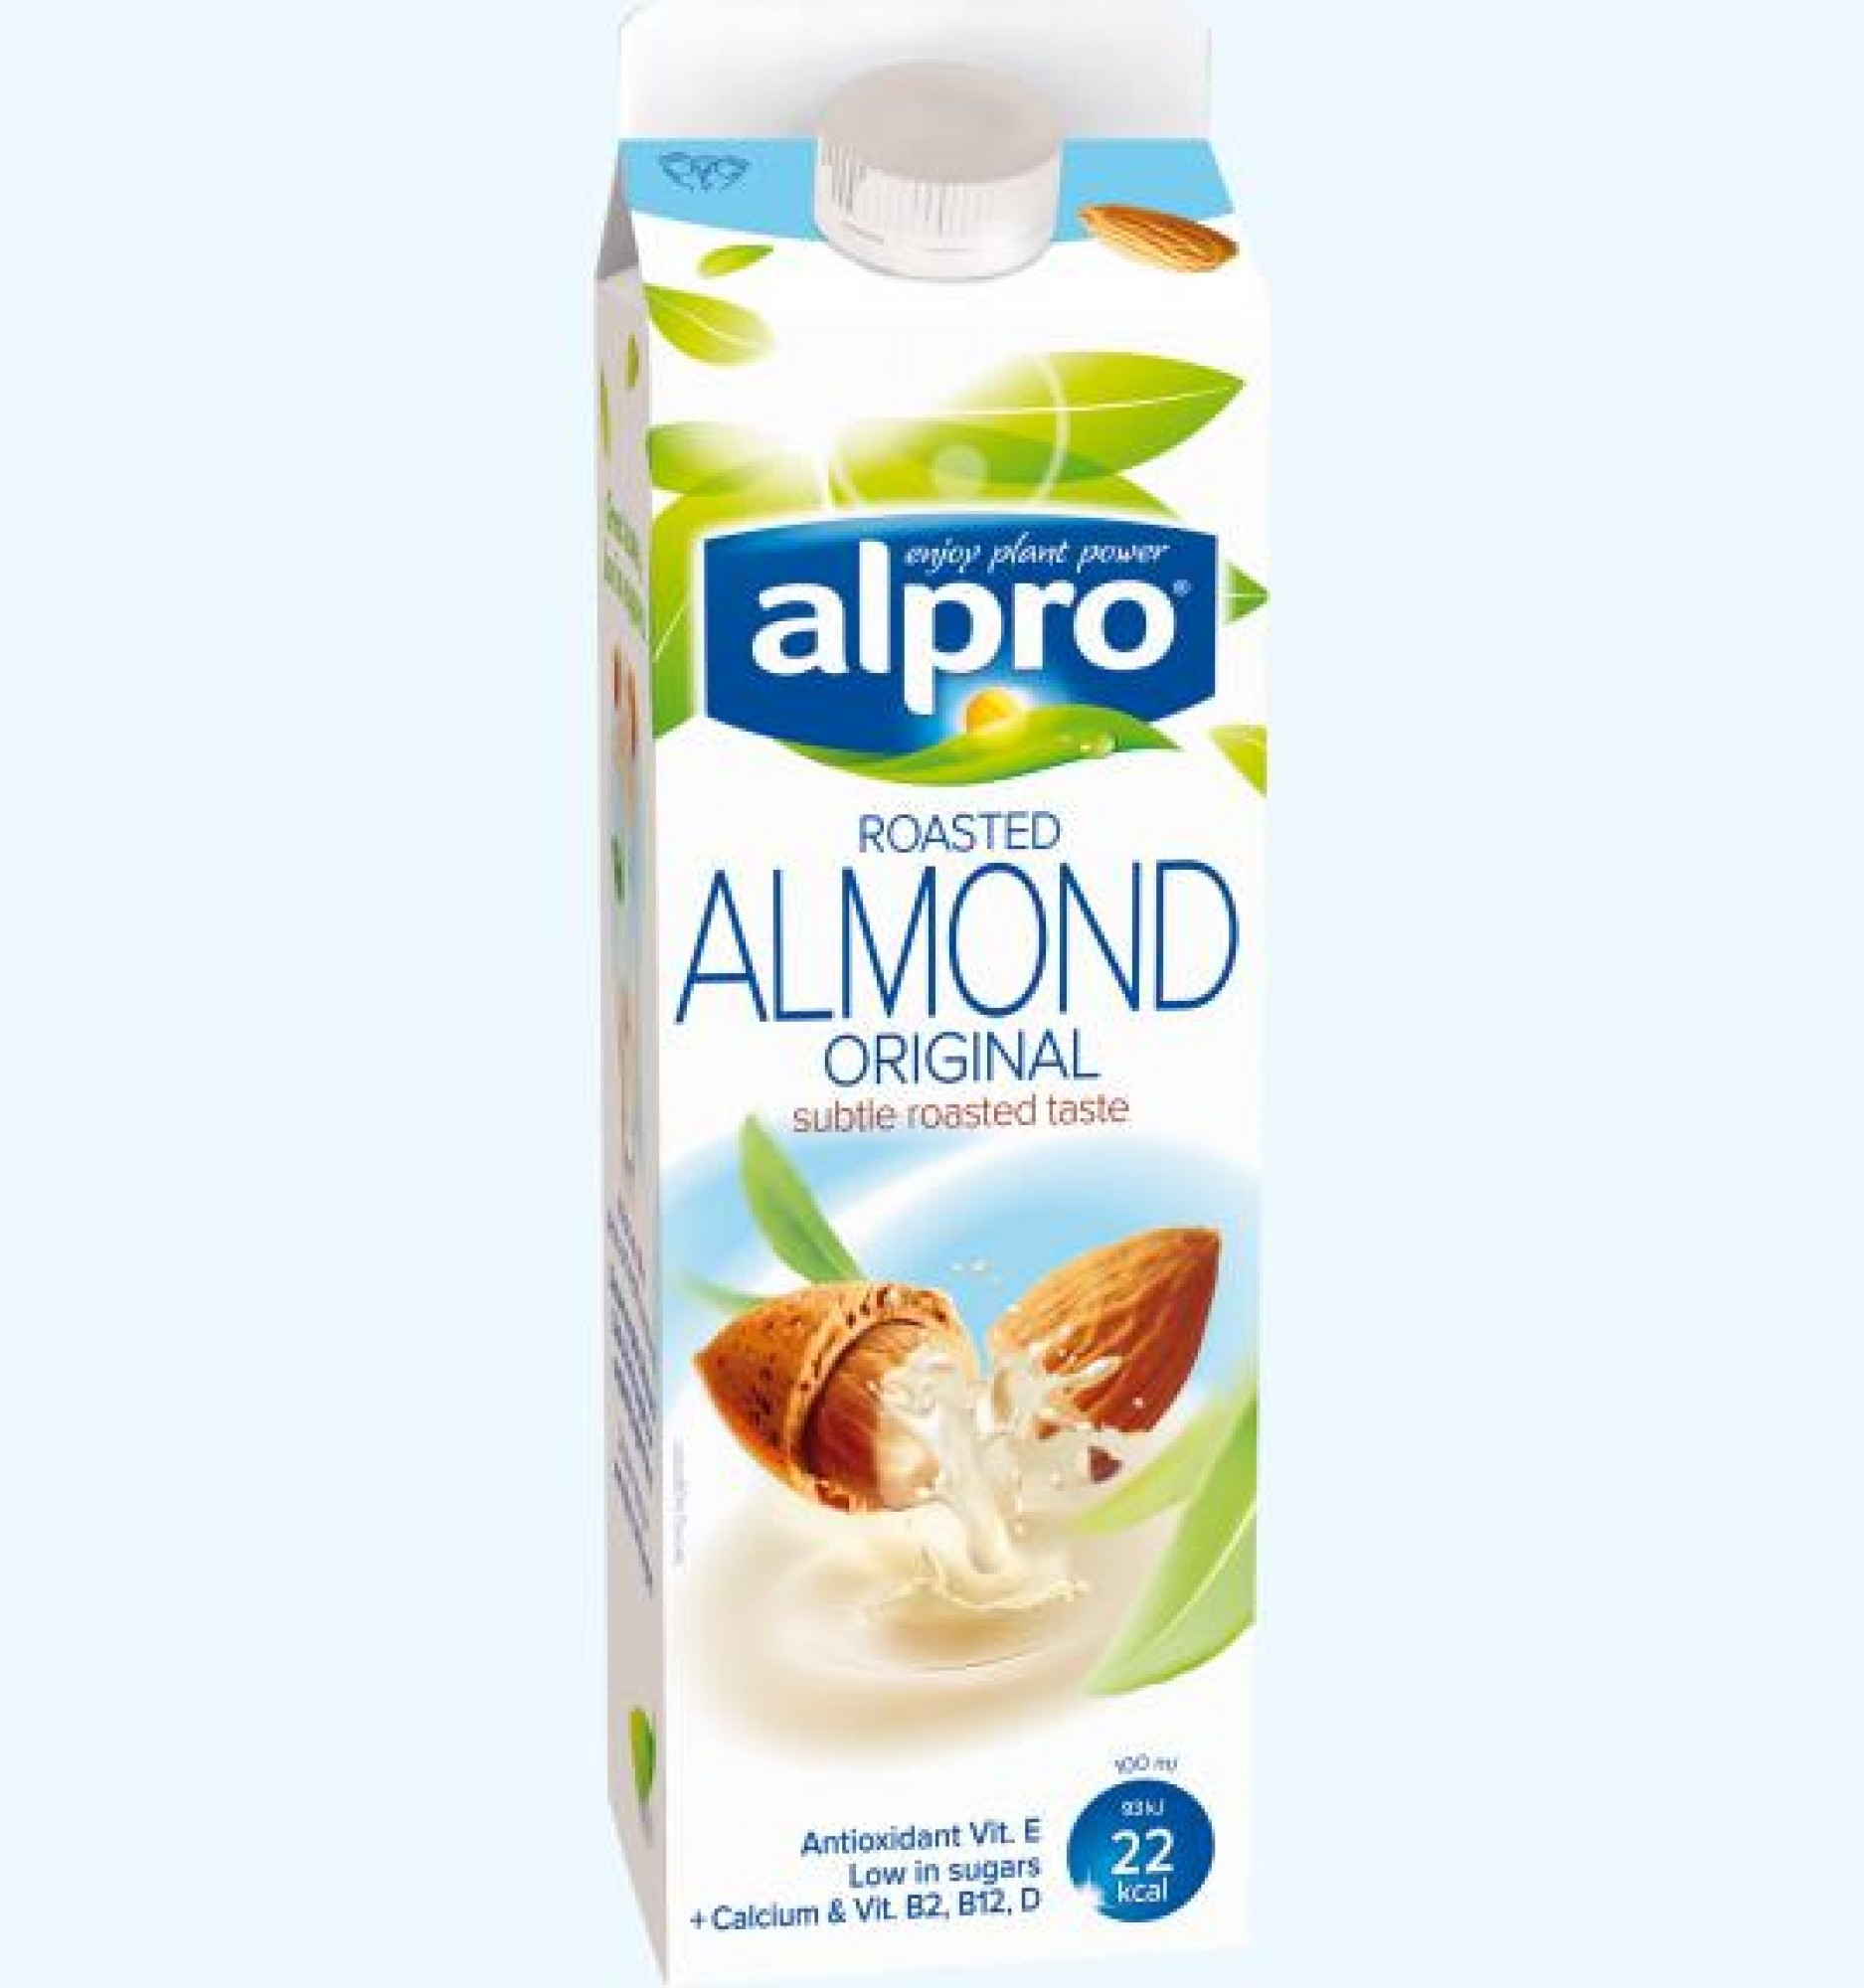 Almond Milk : Health benefits and Side effects